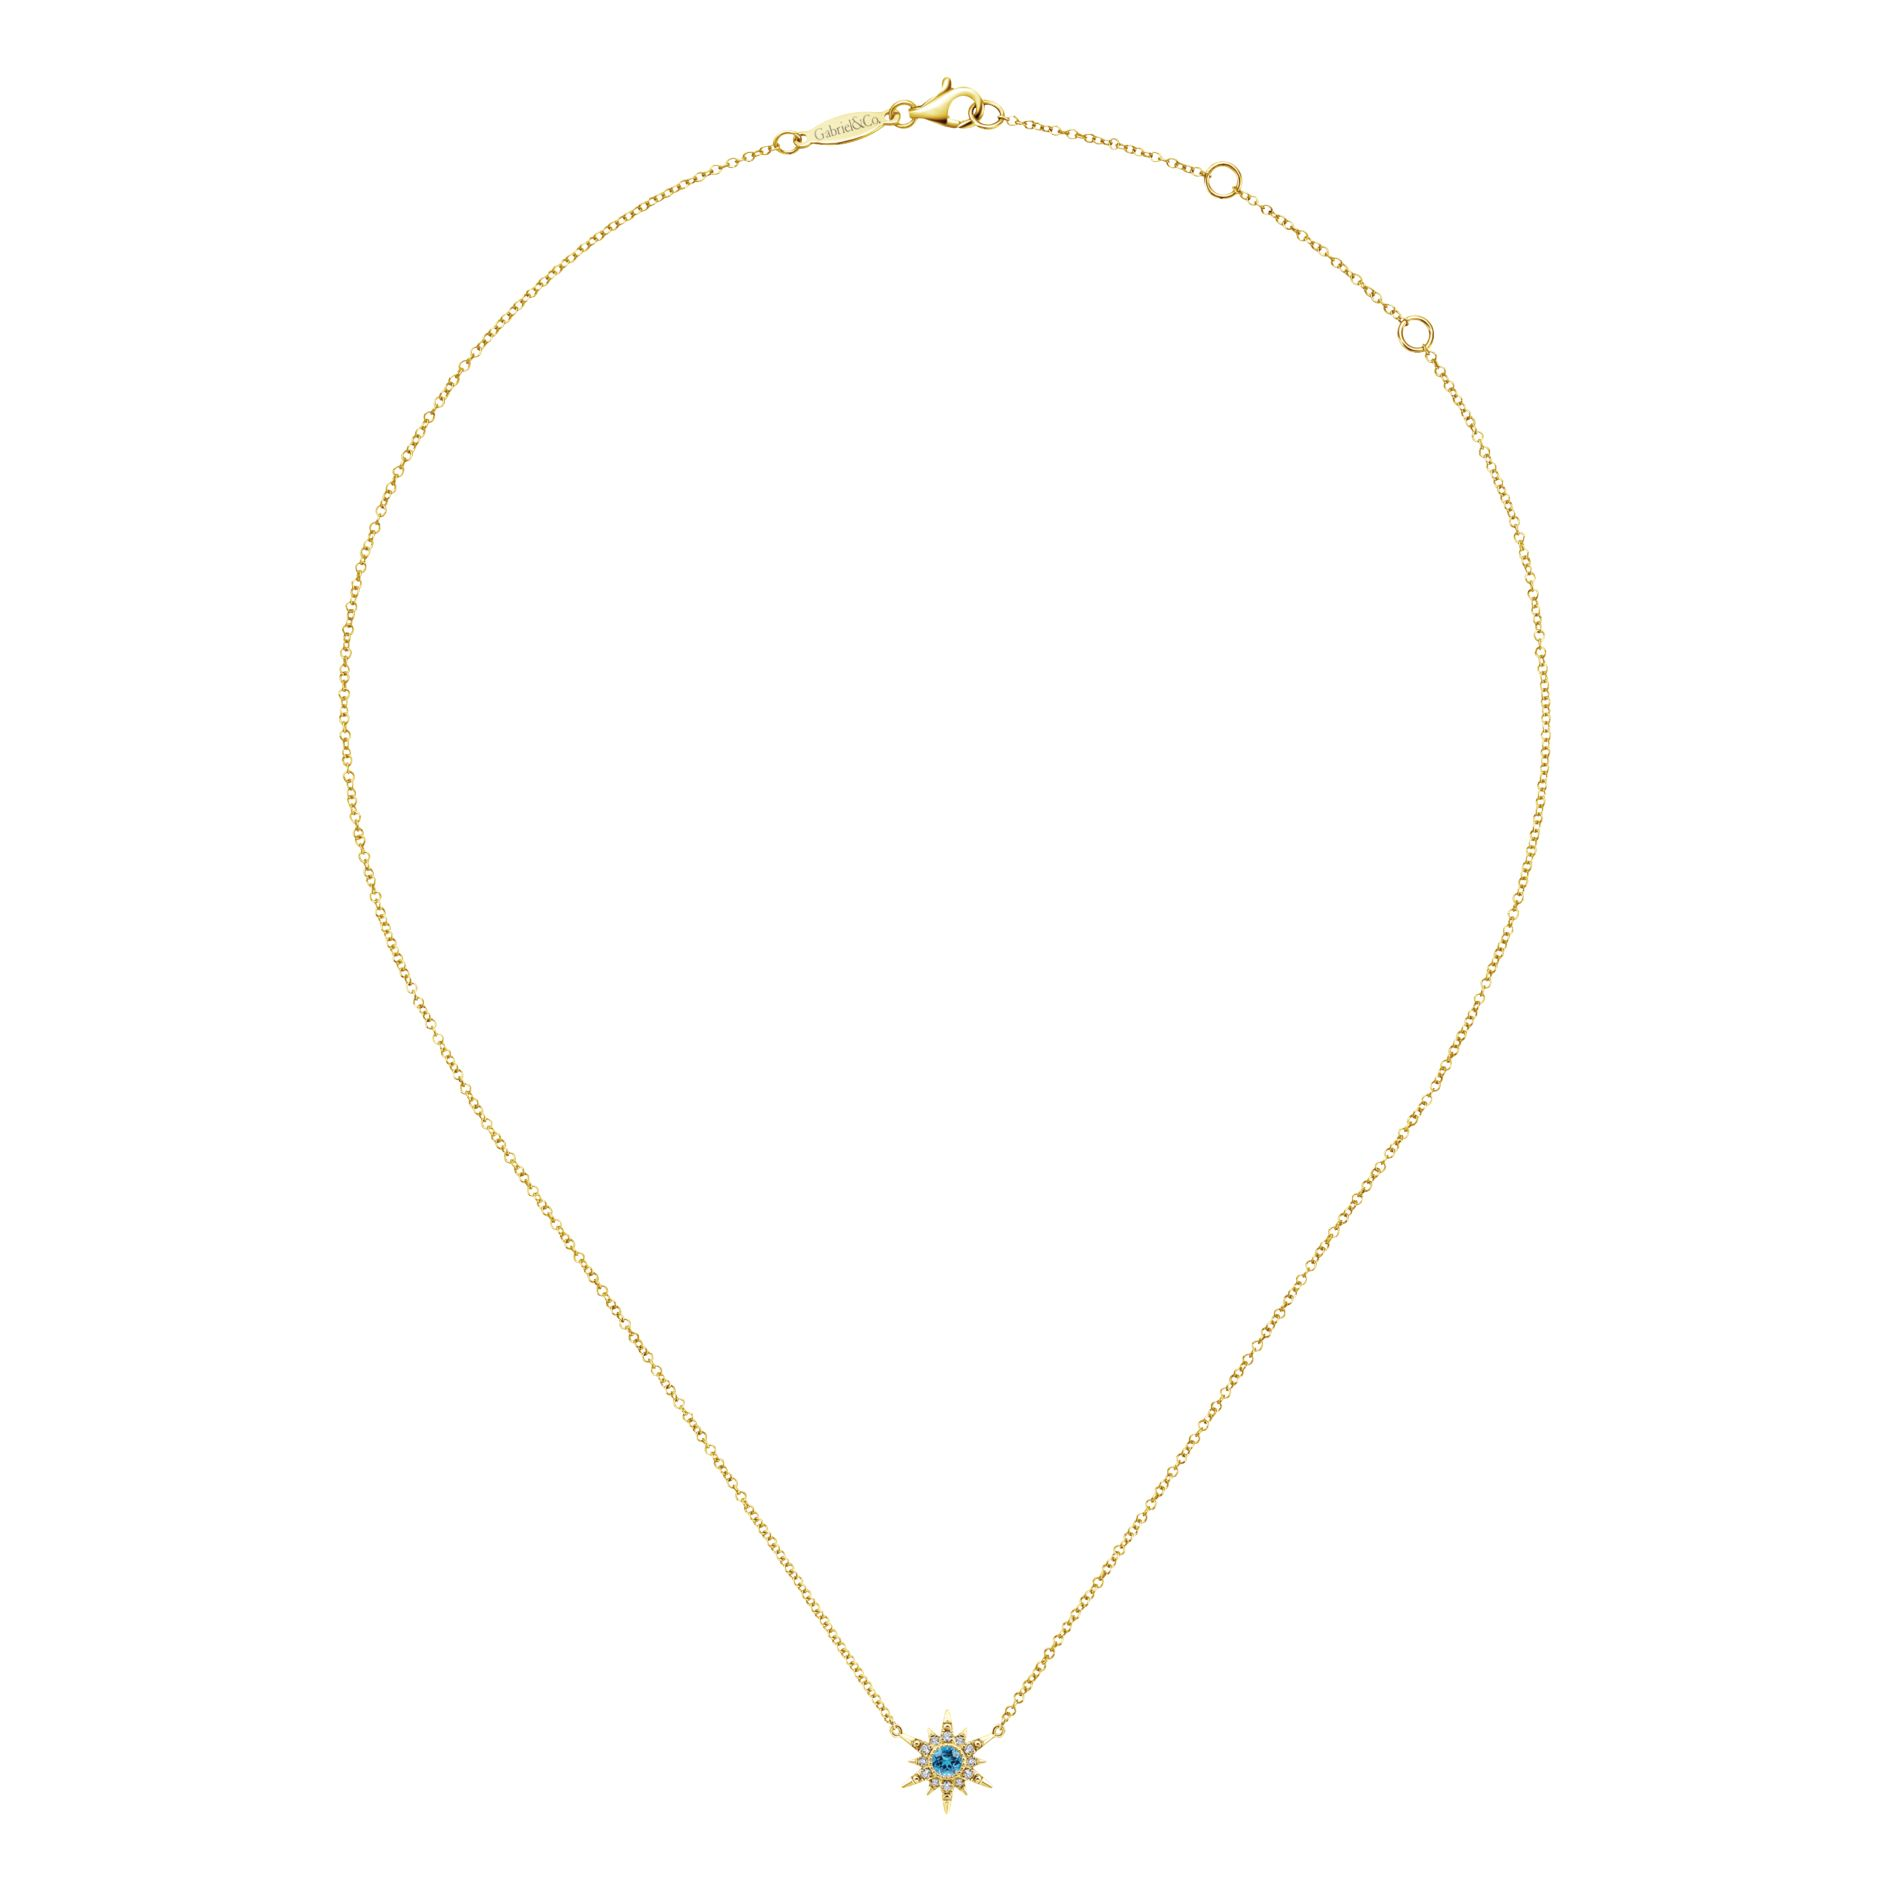 Necklaces - YELLOW GOLD FASHION DIAMOND SWISS BLUE TOPAZ NECKLACE - image #2